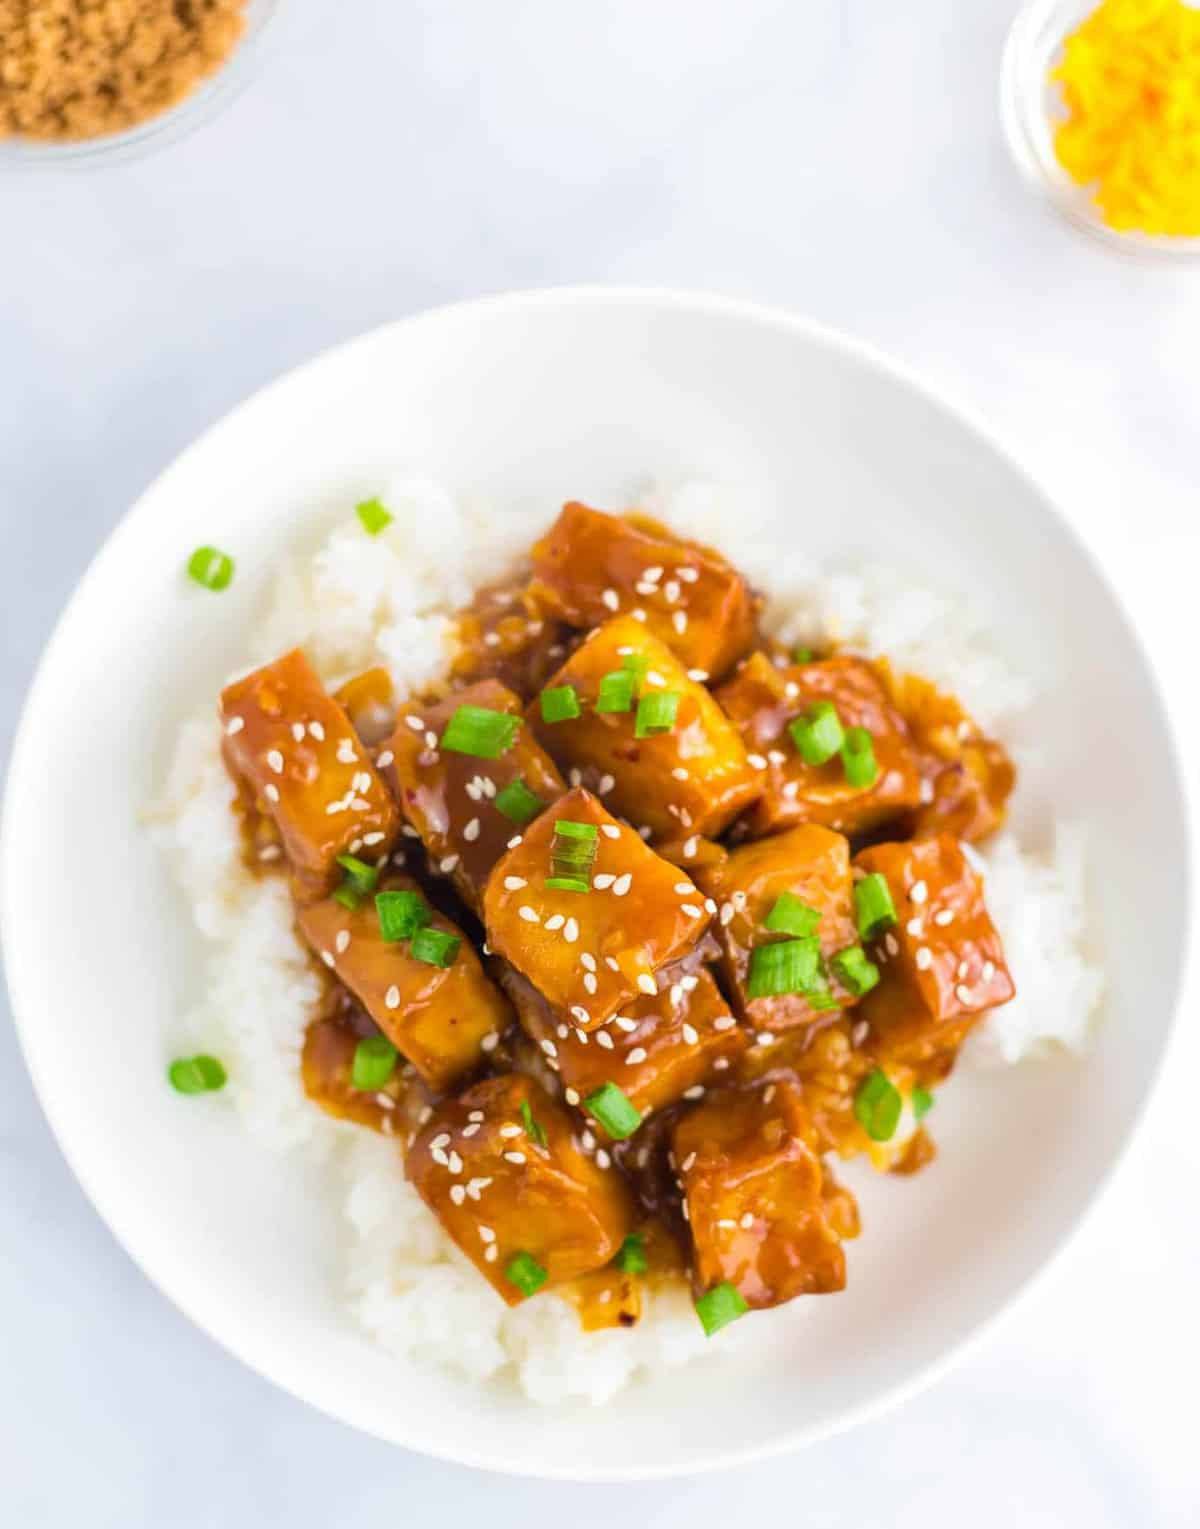 orange tofu in a bowl with white rice